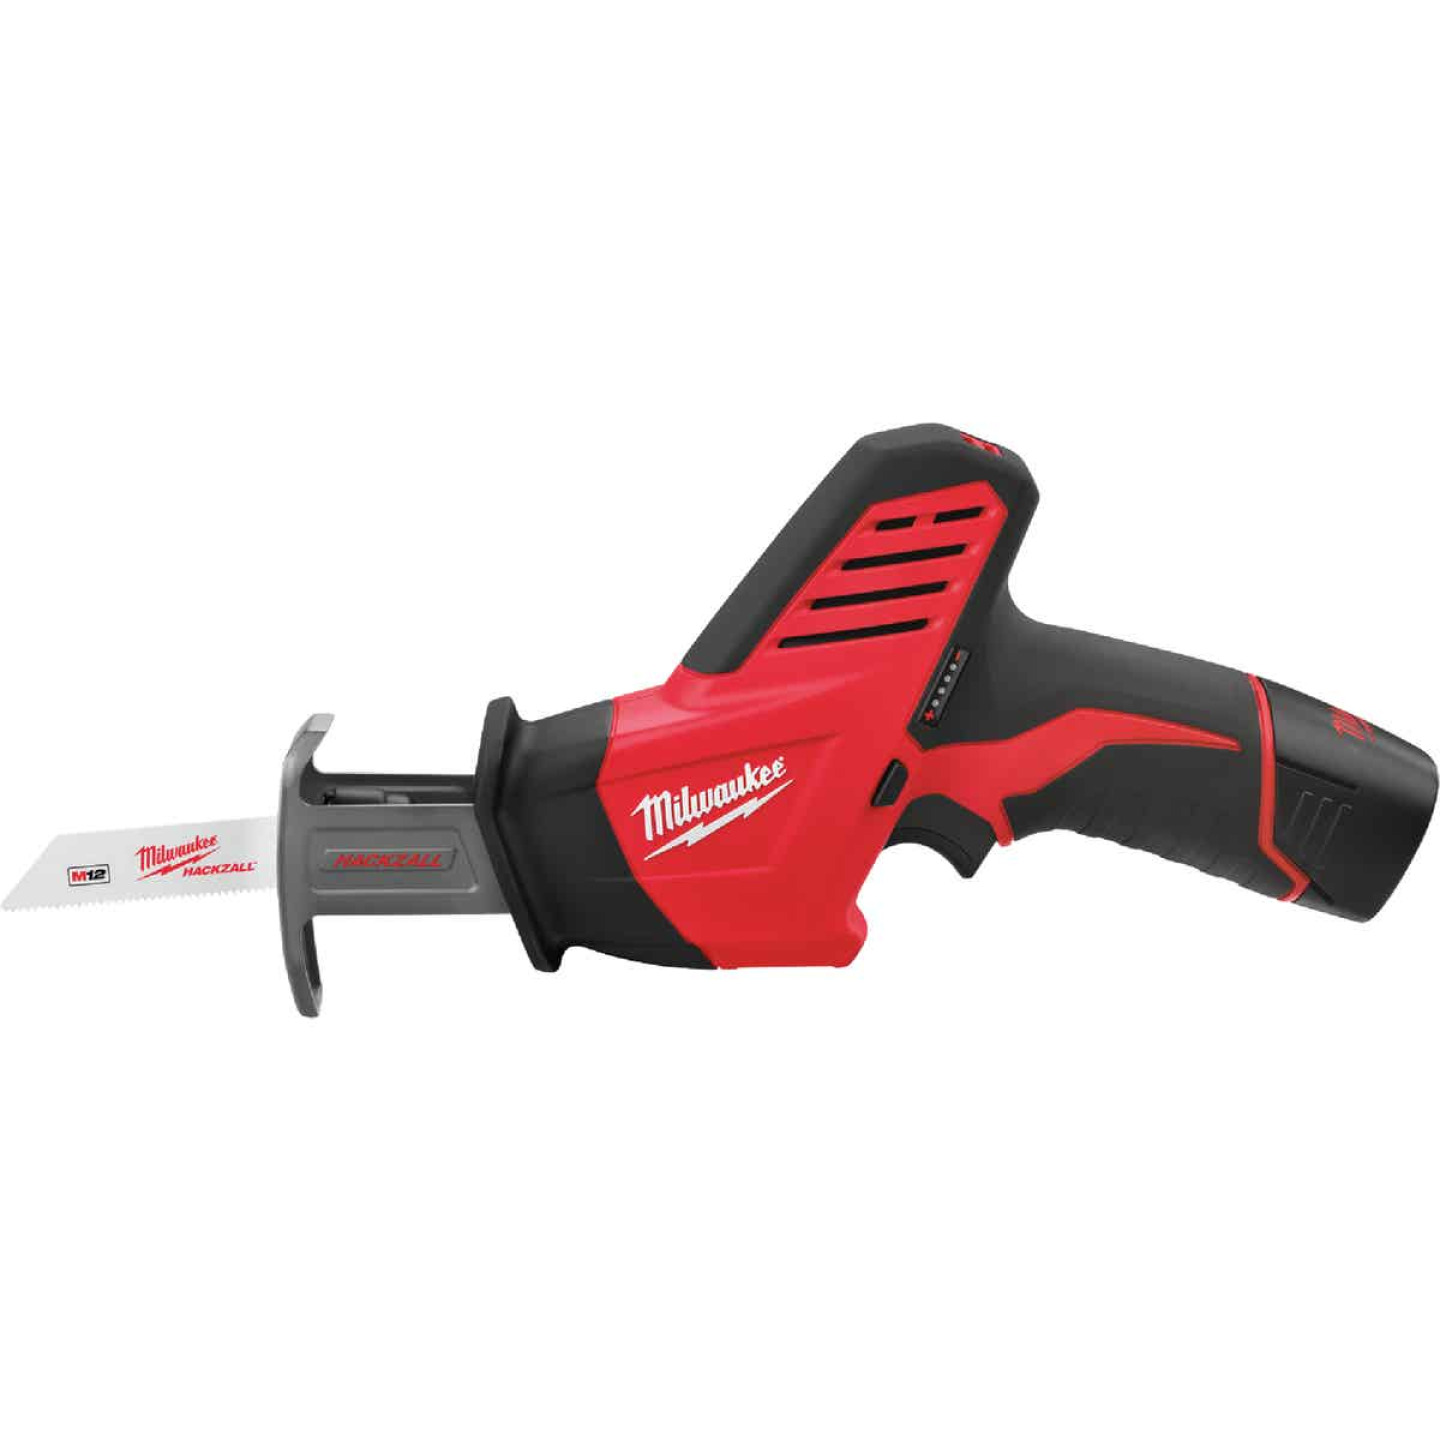 Milwaukee Hackzall M12 12 Volt Lithium-Ion Cordless Reciprocating Saw Kit Image 1